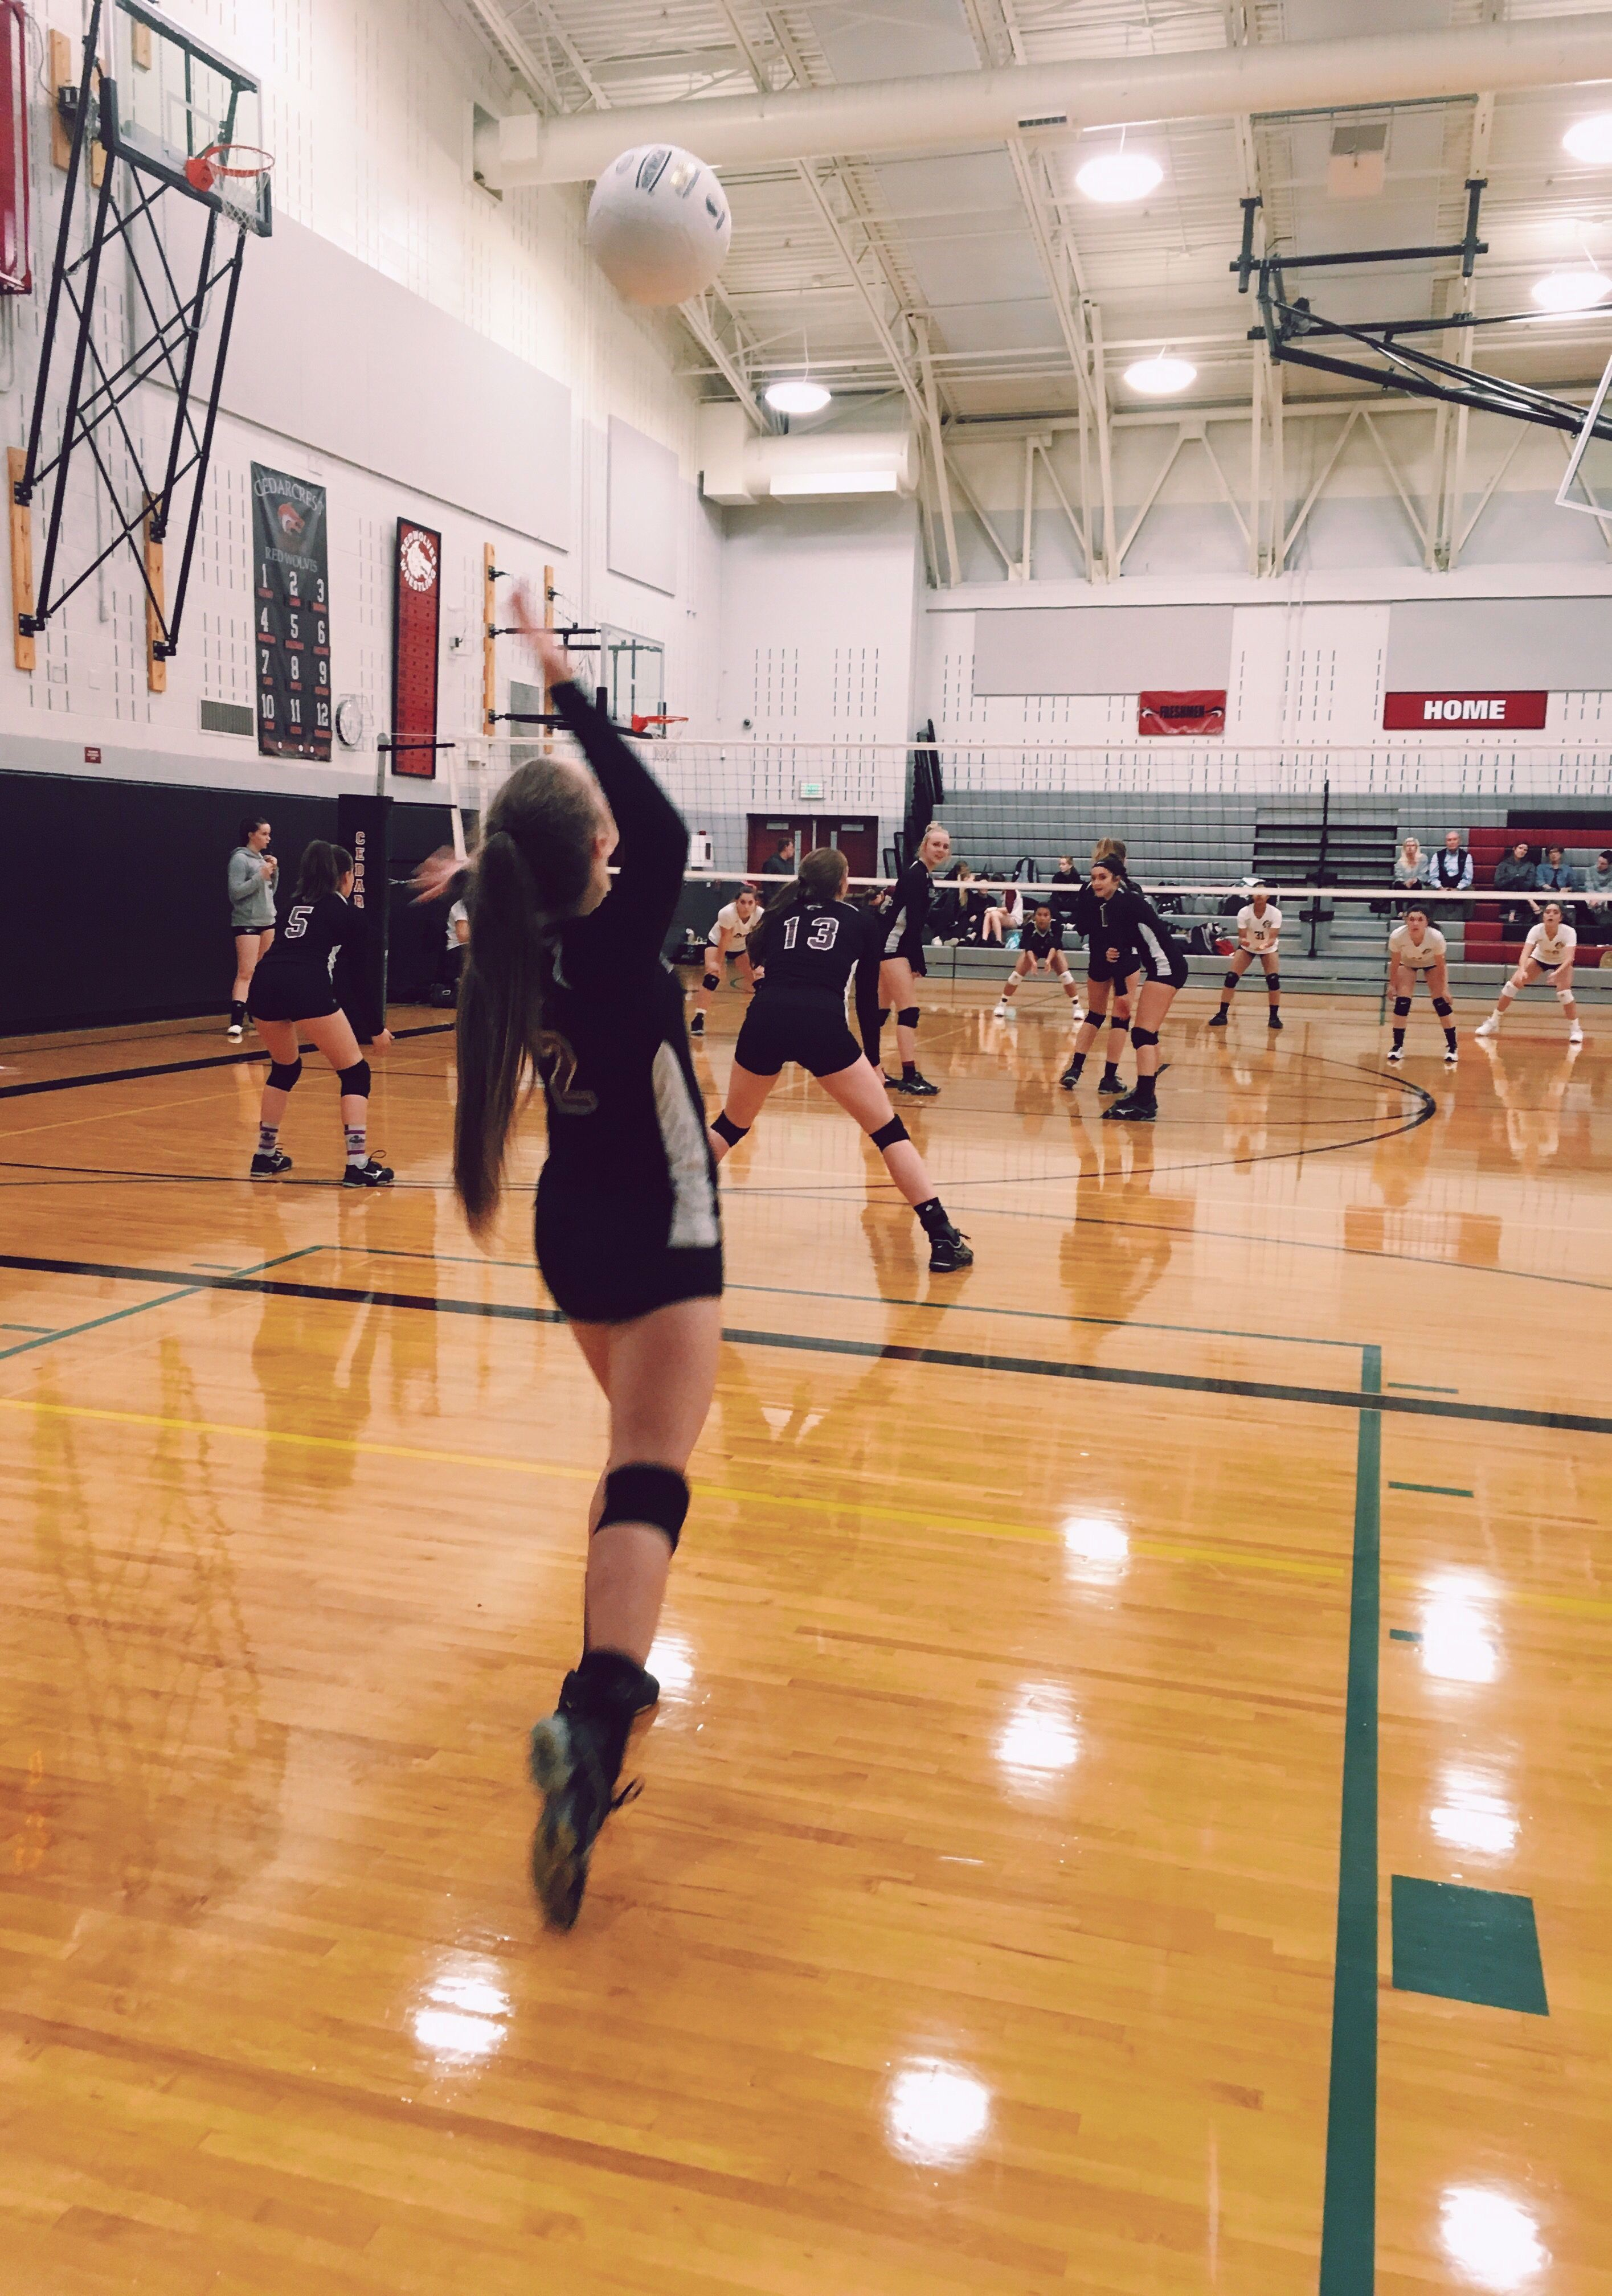 Pinterest Jacquelinestaylor Volleyball Workouts Volleyball Tumblr Volleyball